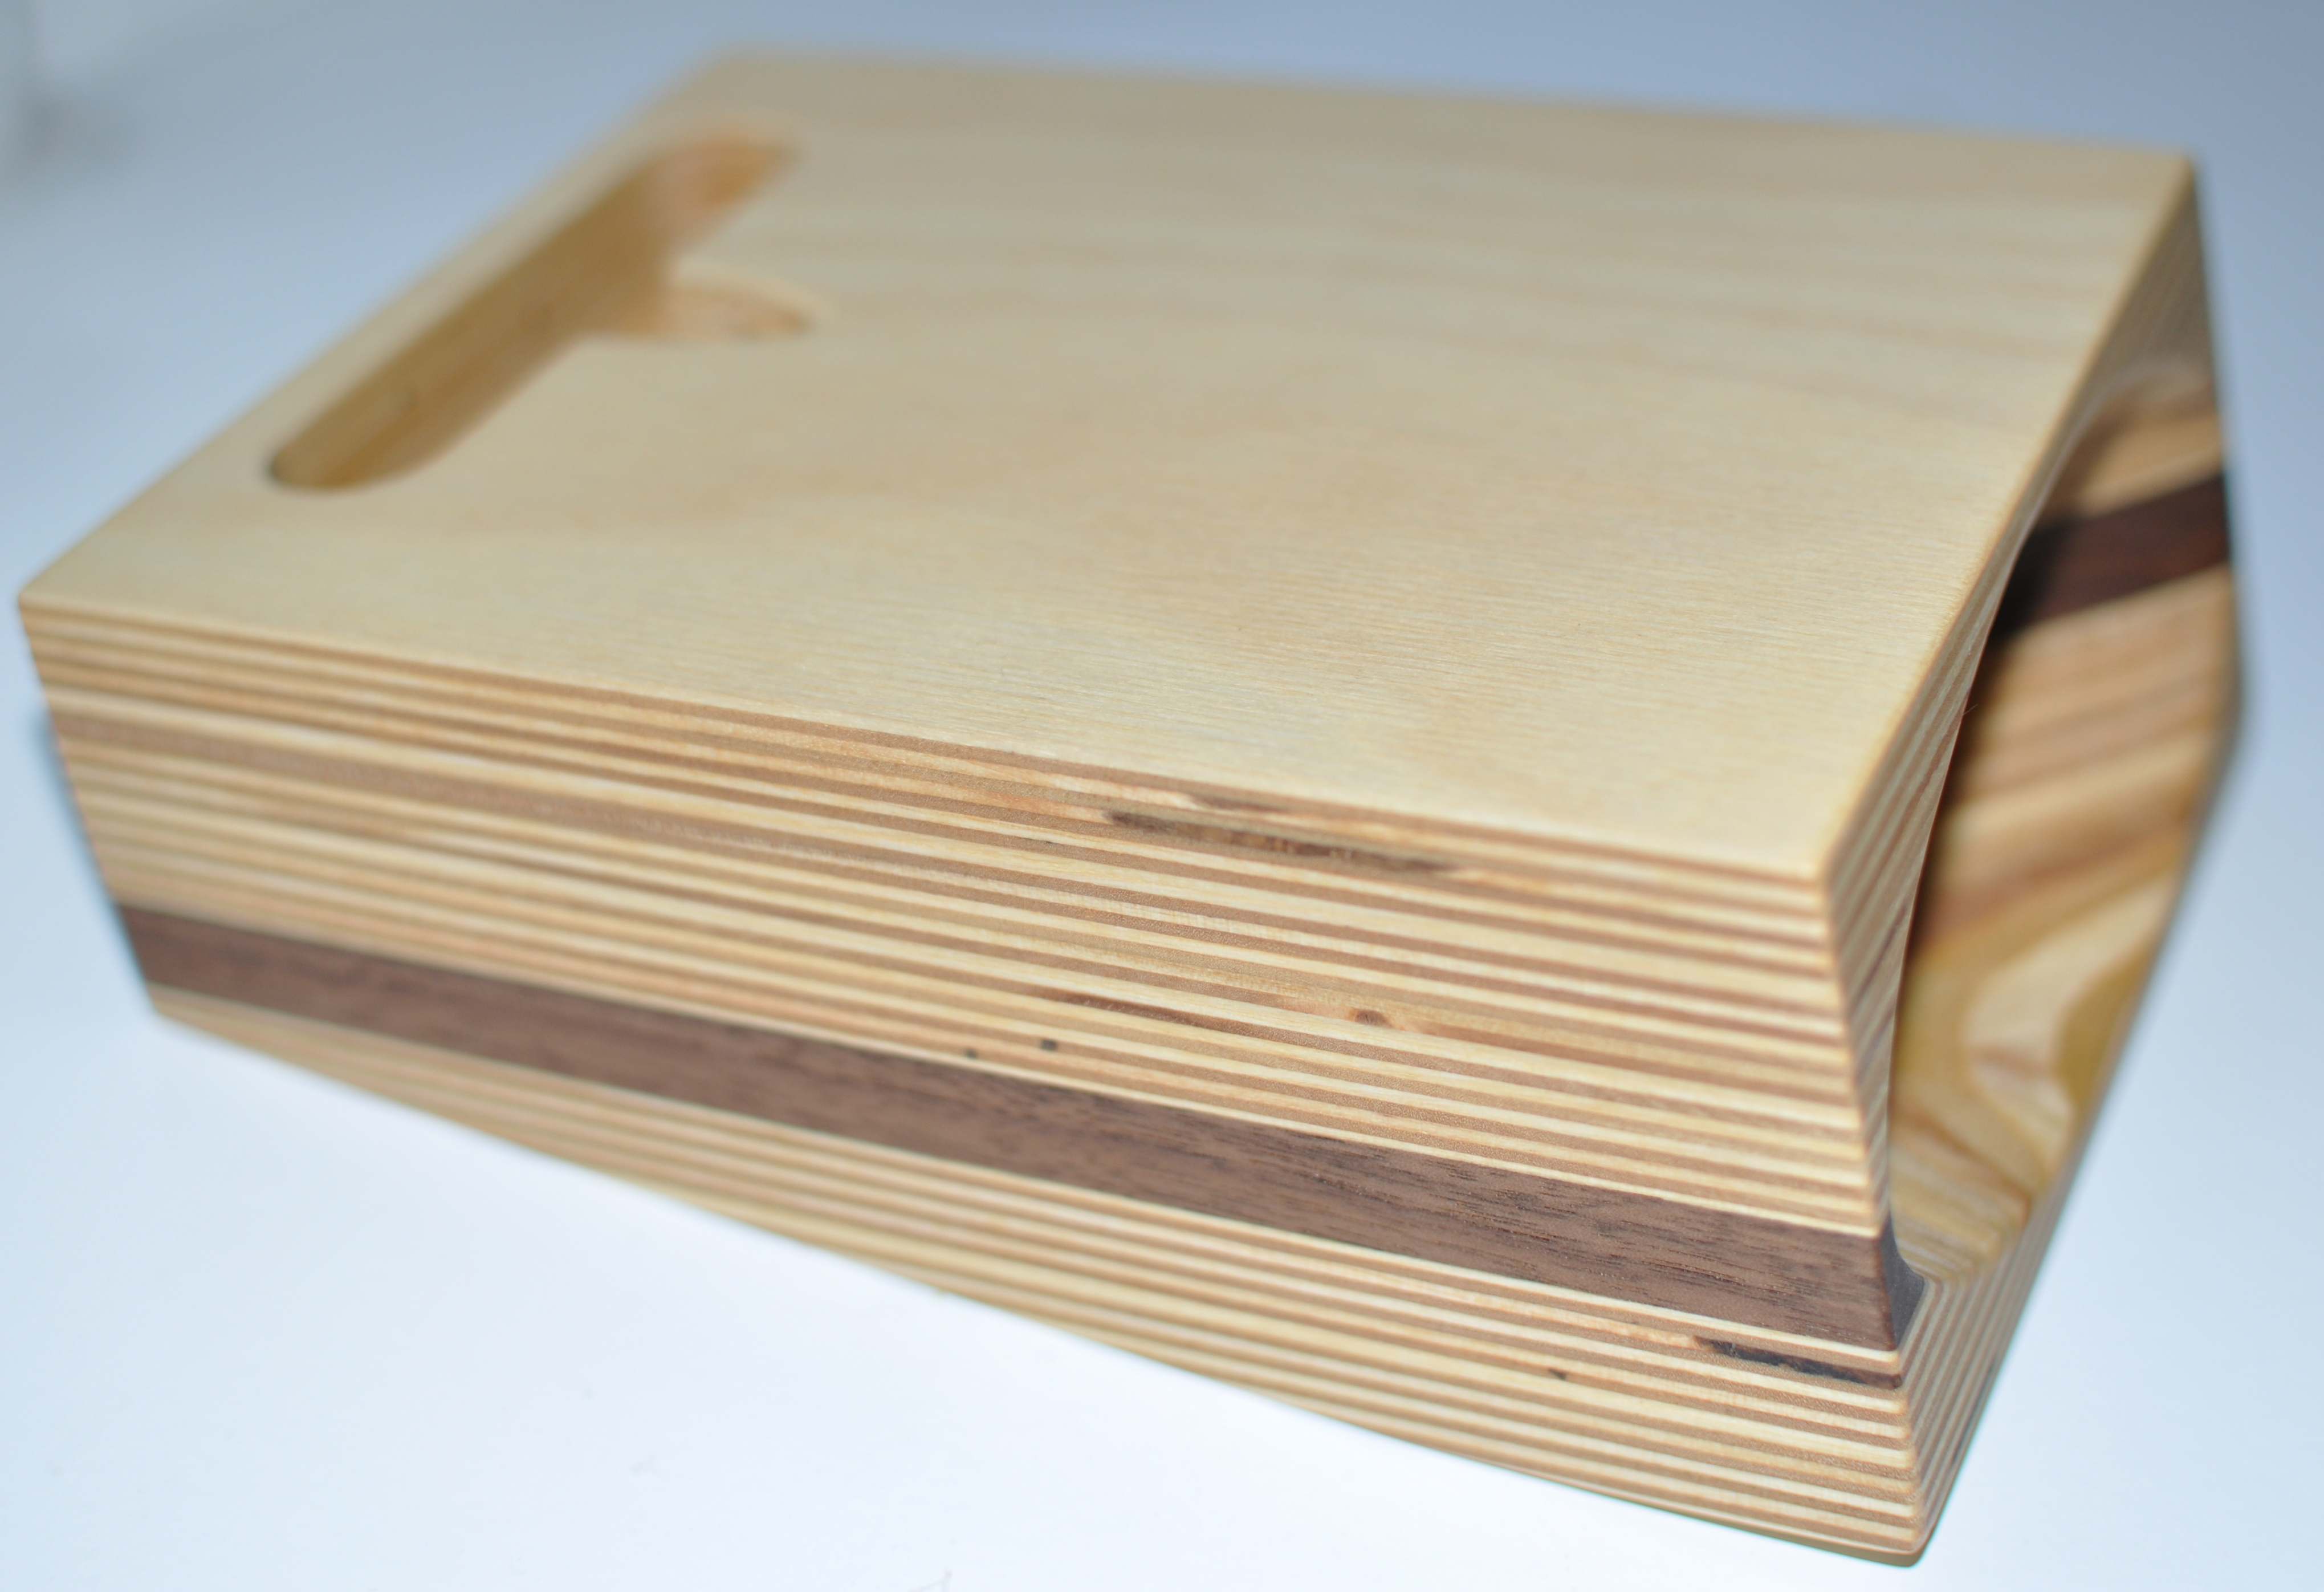 Best Wood for a Speaker Box: It's All about Sound Quality - The Basic Woodworking